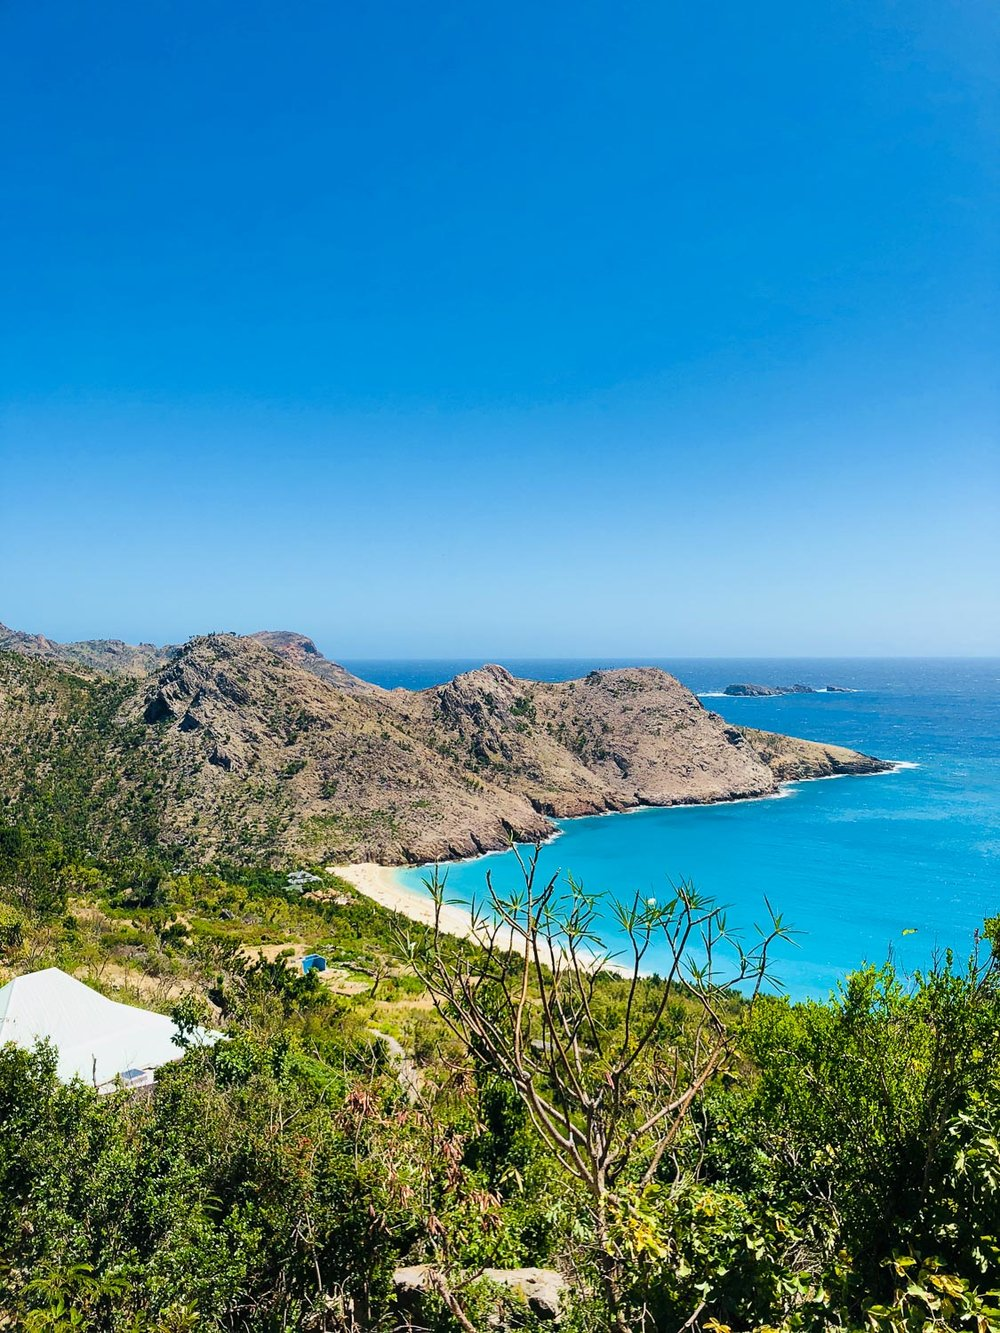 St Barths Unfiltered (4 of 23).jpg